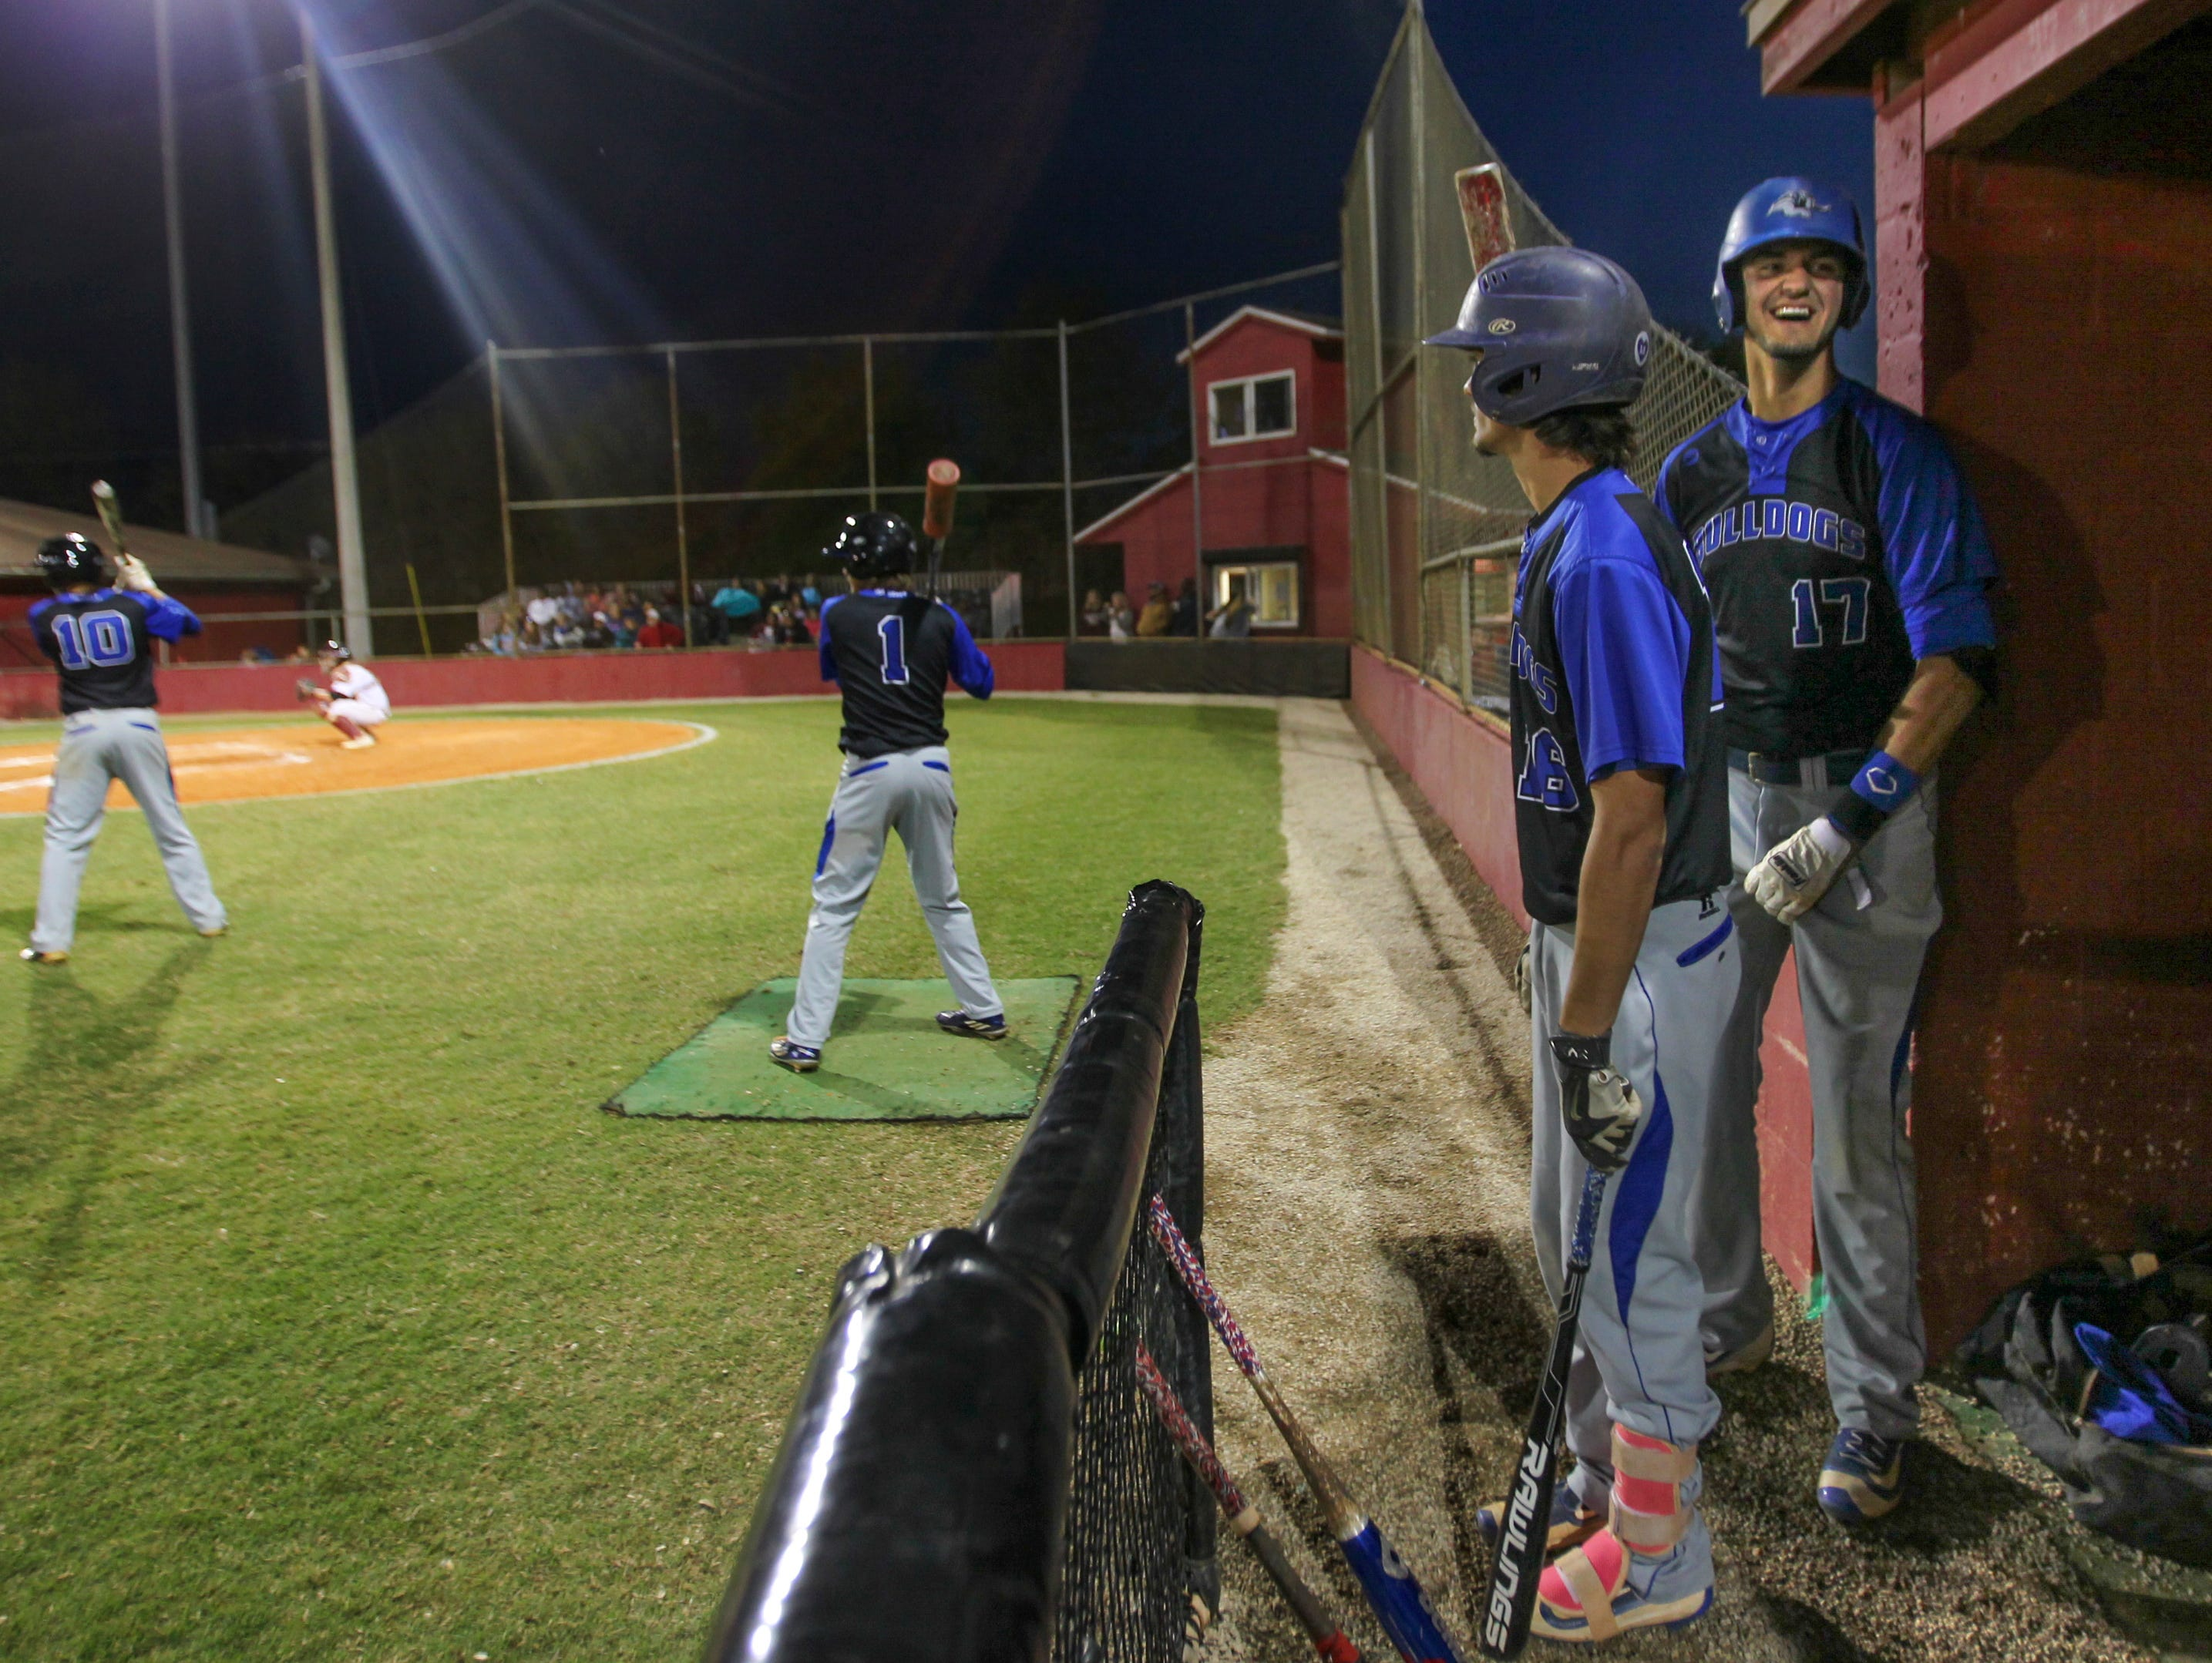 Ida Baker's Christian Menendez, right, laughs while the rest of the team chatters to the opposing team Monday at Riverdale High School in Fort Myers.